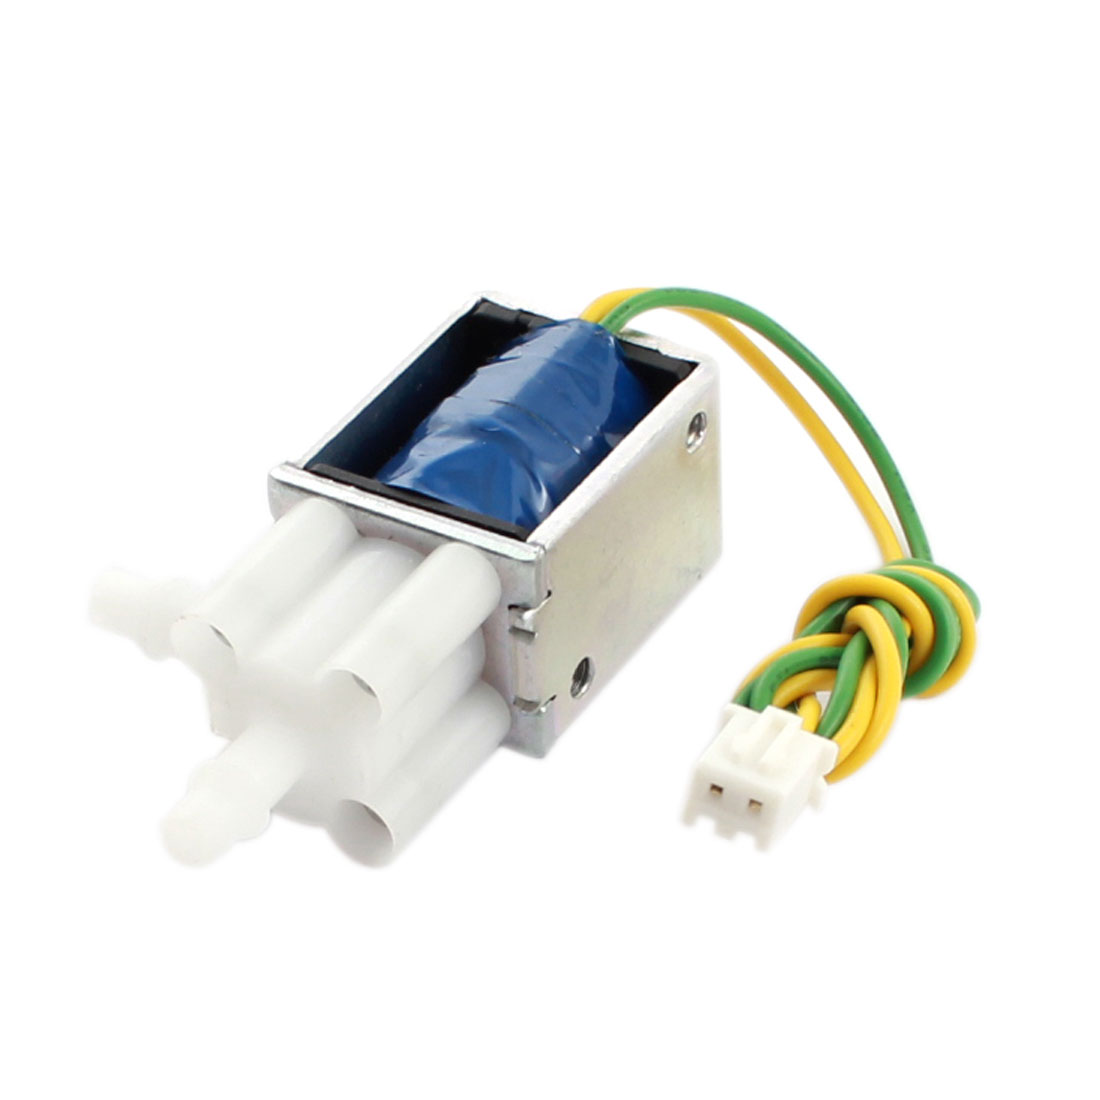 DC 12V 0.4A 4.8W 50% 23cm Long Wired Connect 2-Outlet Open Frame Electromagnet Solenoid Valve